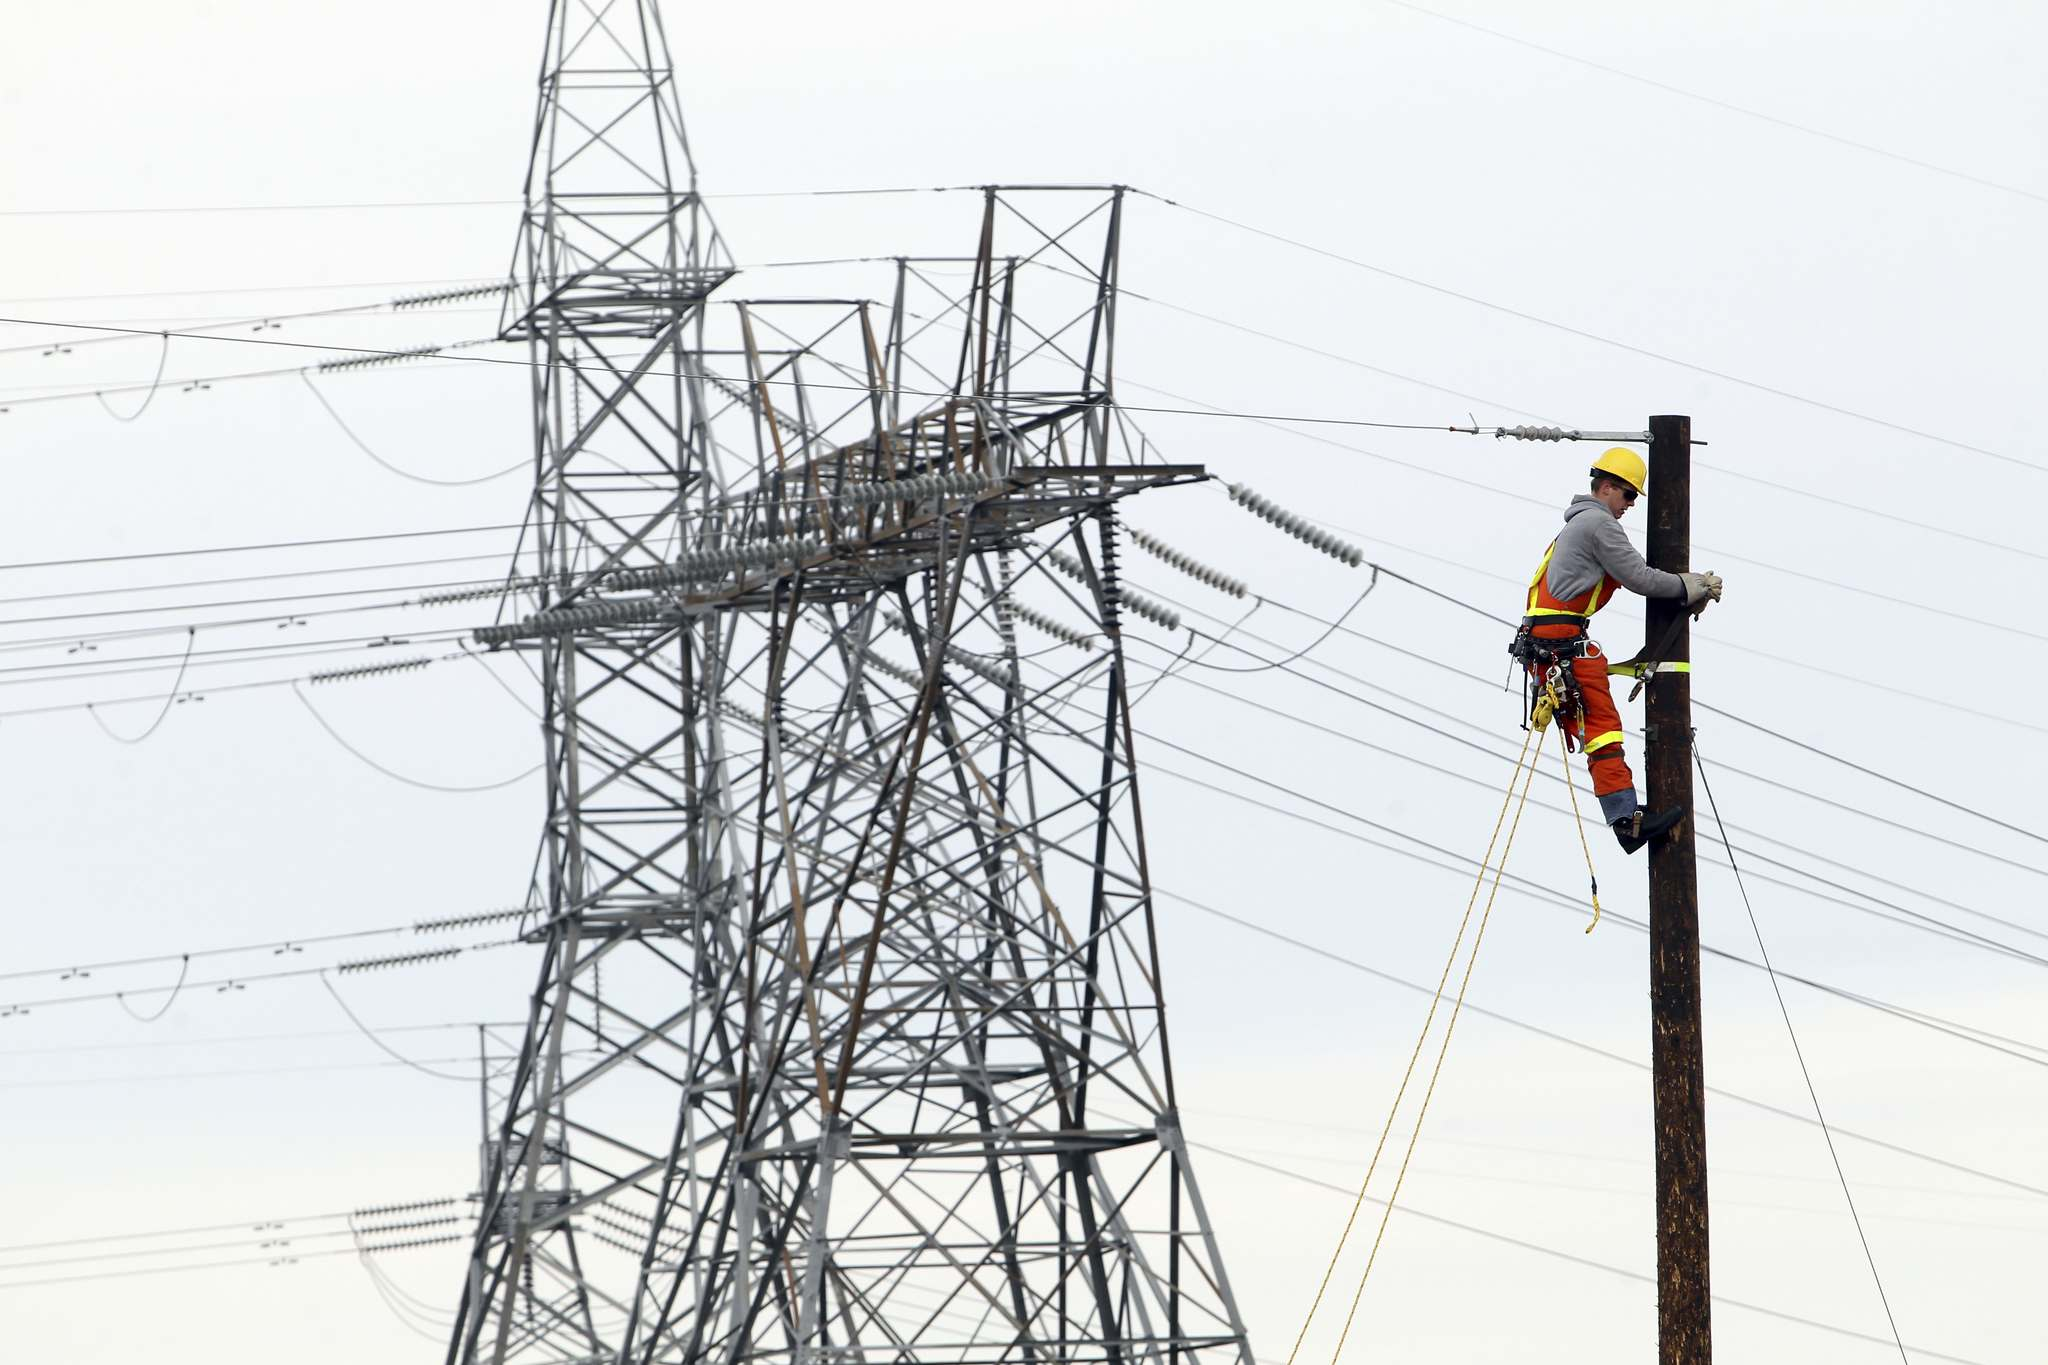 TIM SMITH / BRANDON SUN FILES</p><p>Canada&rsquo;s energy ministers should prod U.S. states to see Canada as a source of clean power and promote cross-border transmission infrastructure.</p>